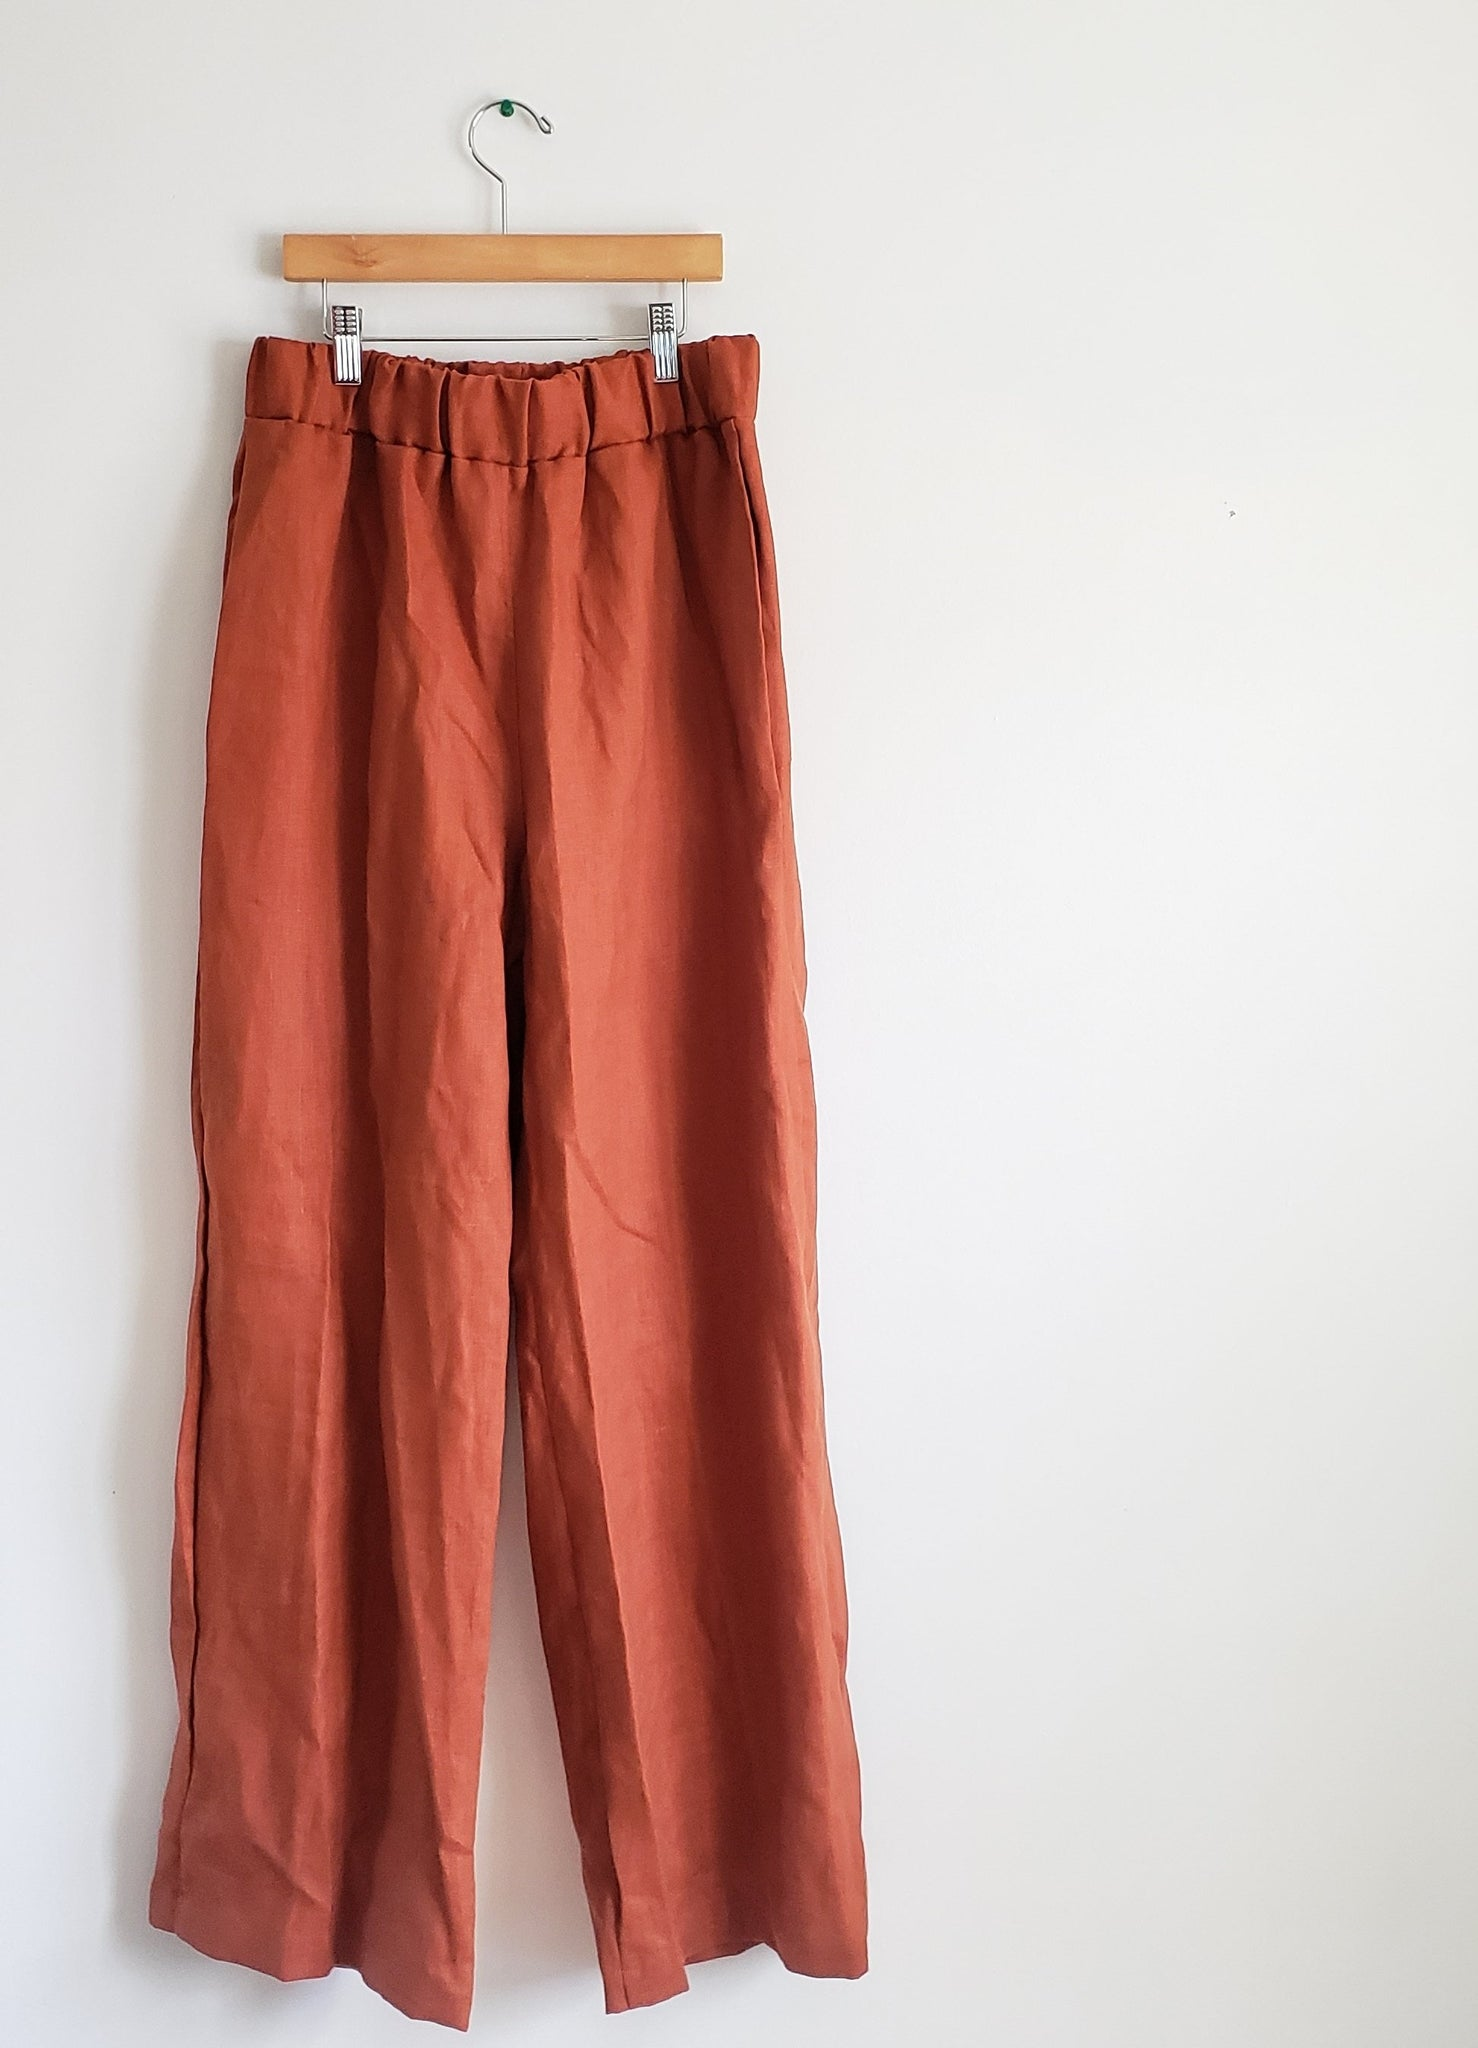 rust linen pants hanging on white wall